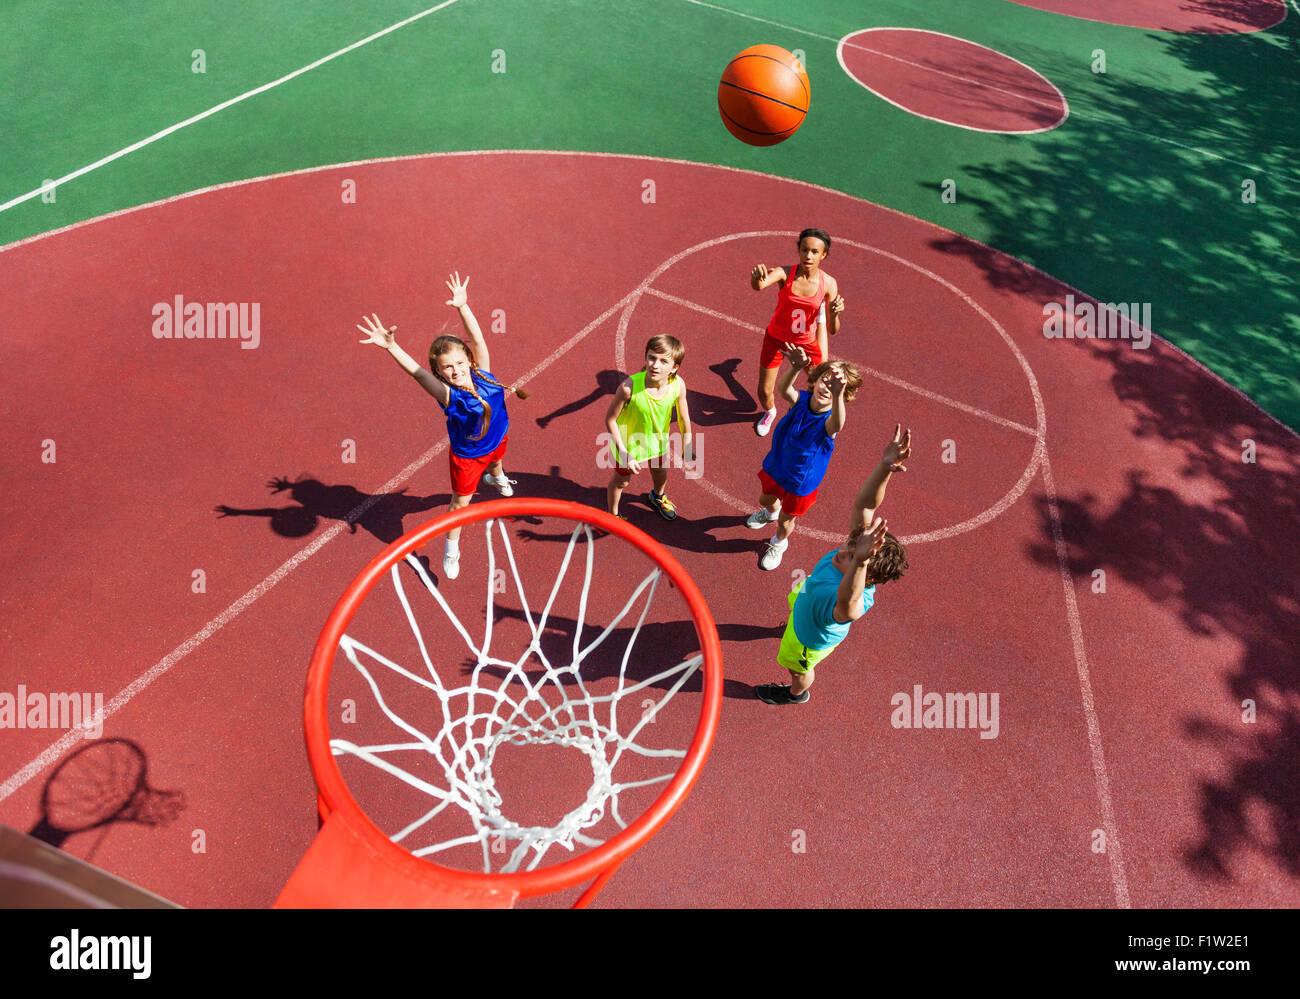 Flying ball to basket top view during basketball - Stock Image